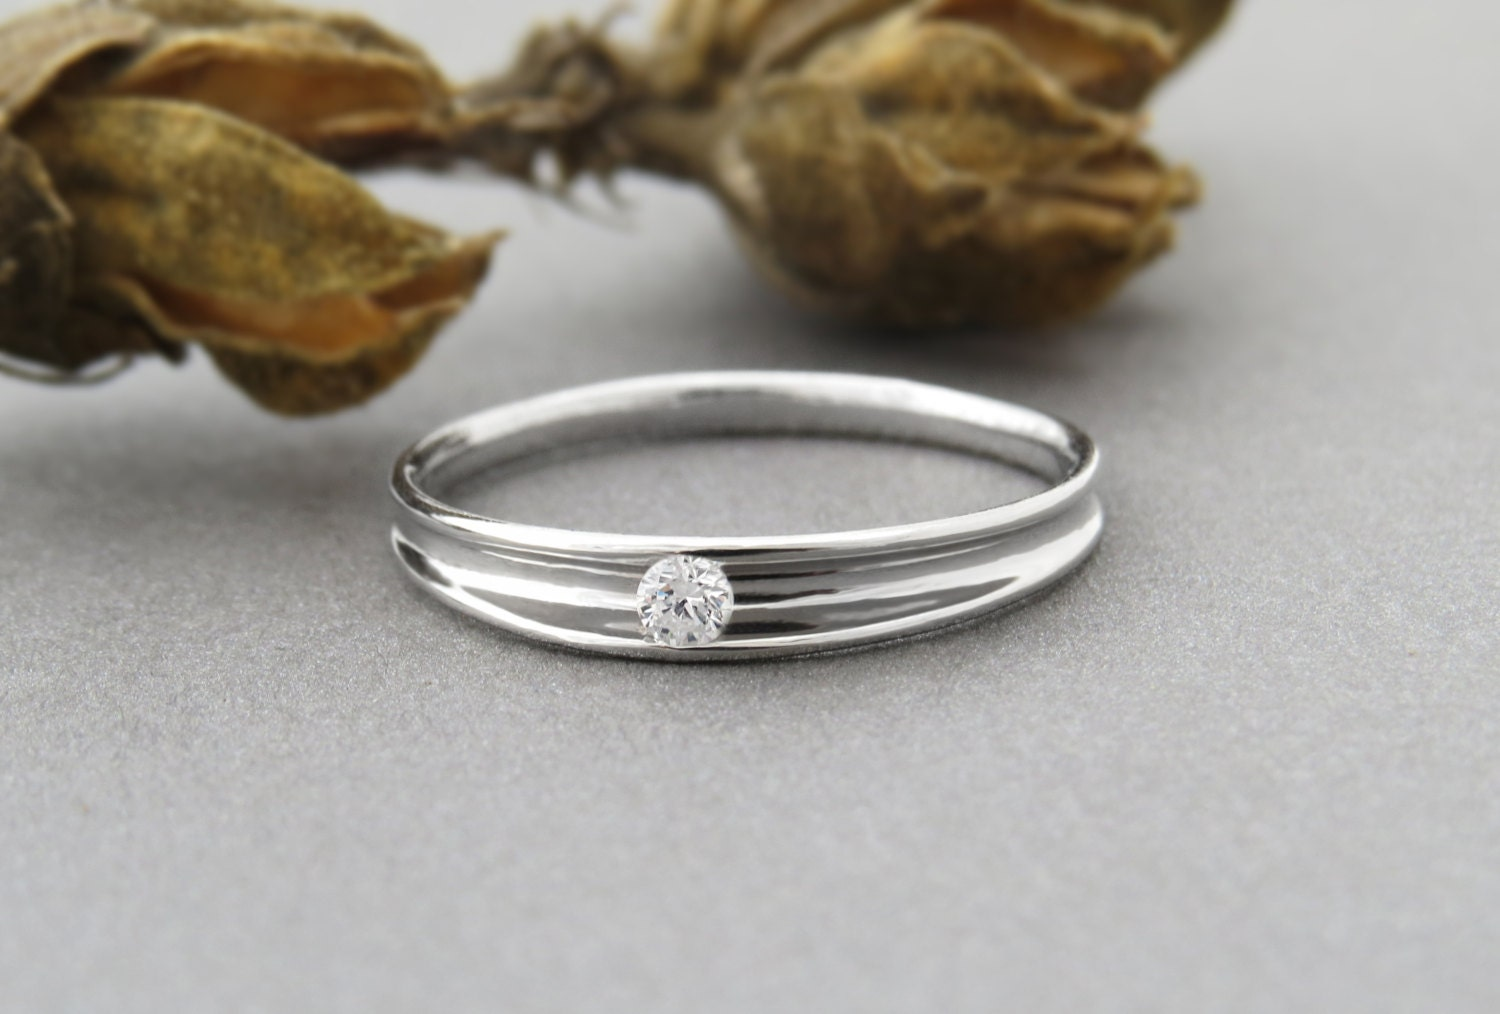 unique engagement ring small diamond engagement ring. Black Bedroom Furniture Sets. Home Design Ideas